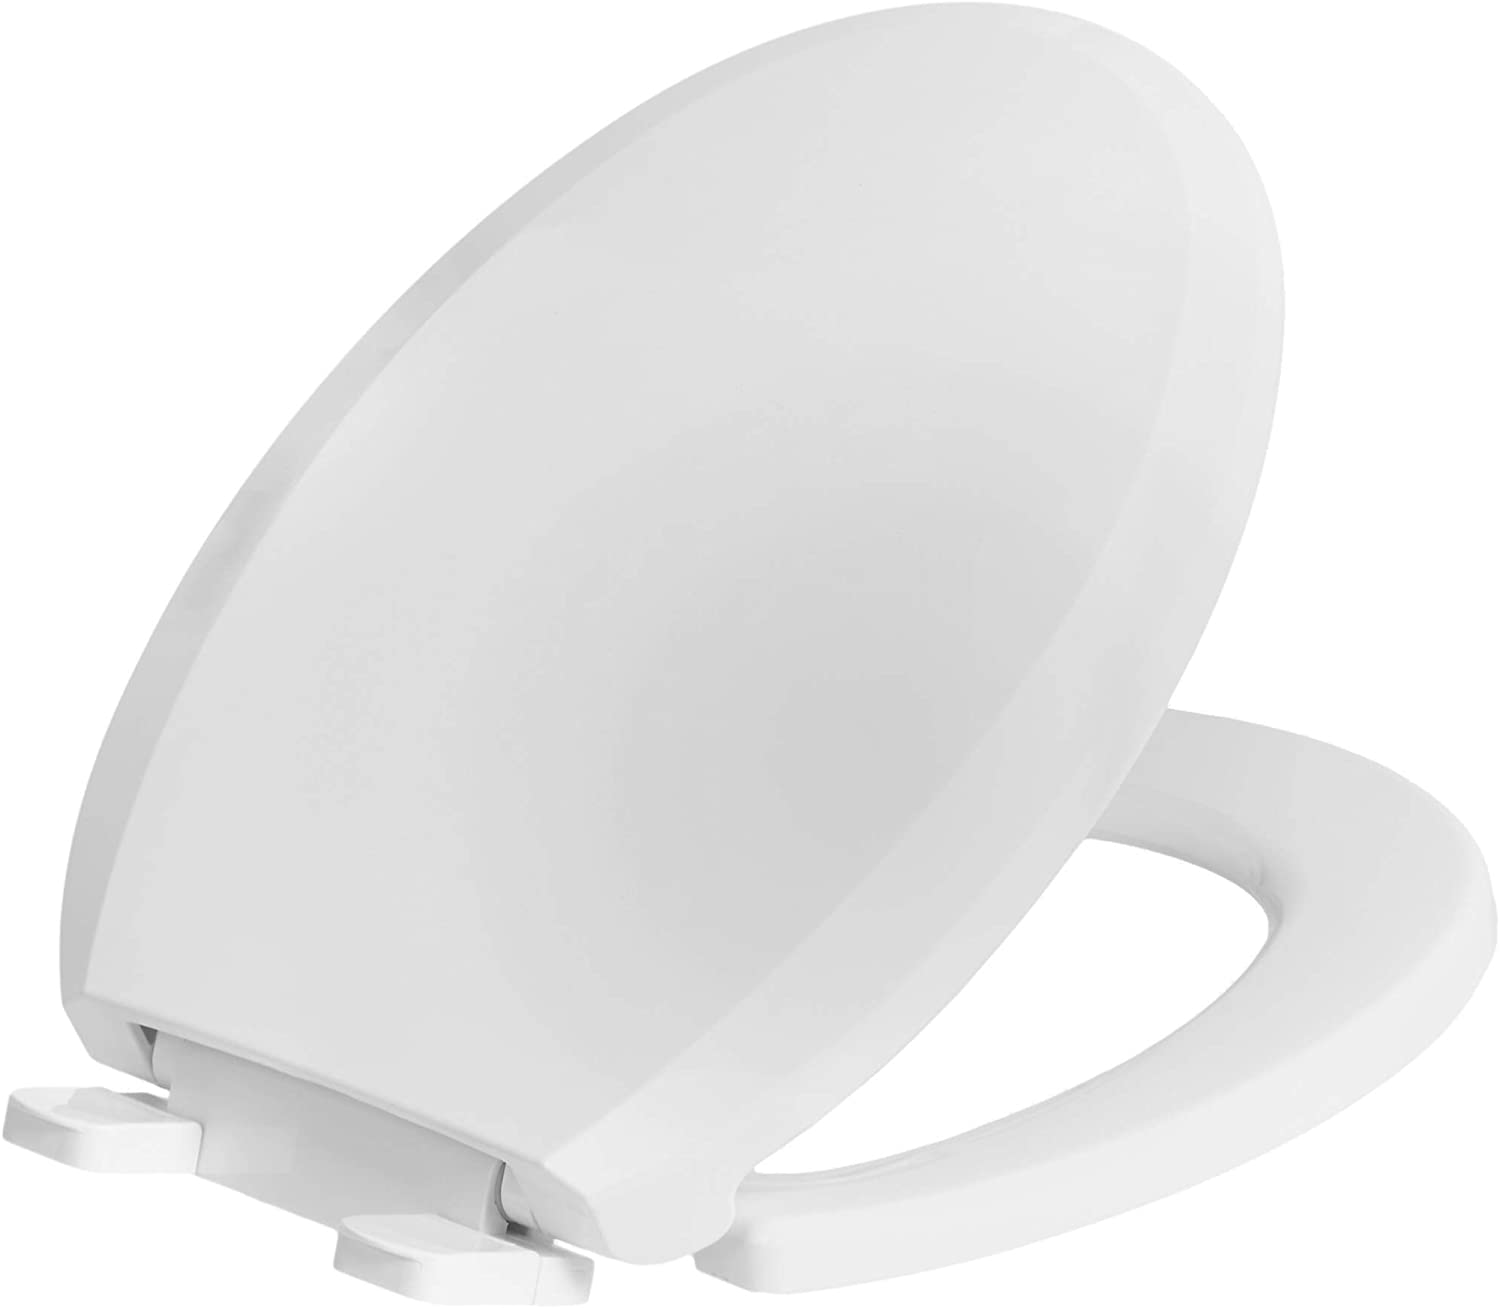 AmazonBasics AB-T102-R-W Quick-Install Soft-Close Toilet Seat, Round, White, 1-Pack